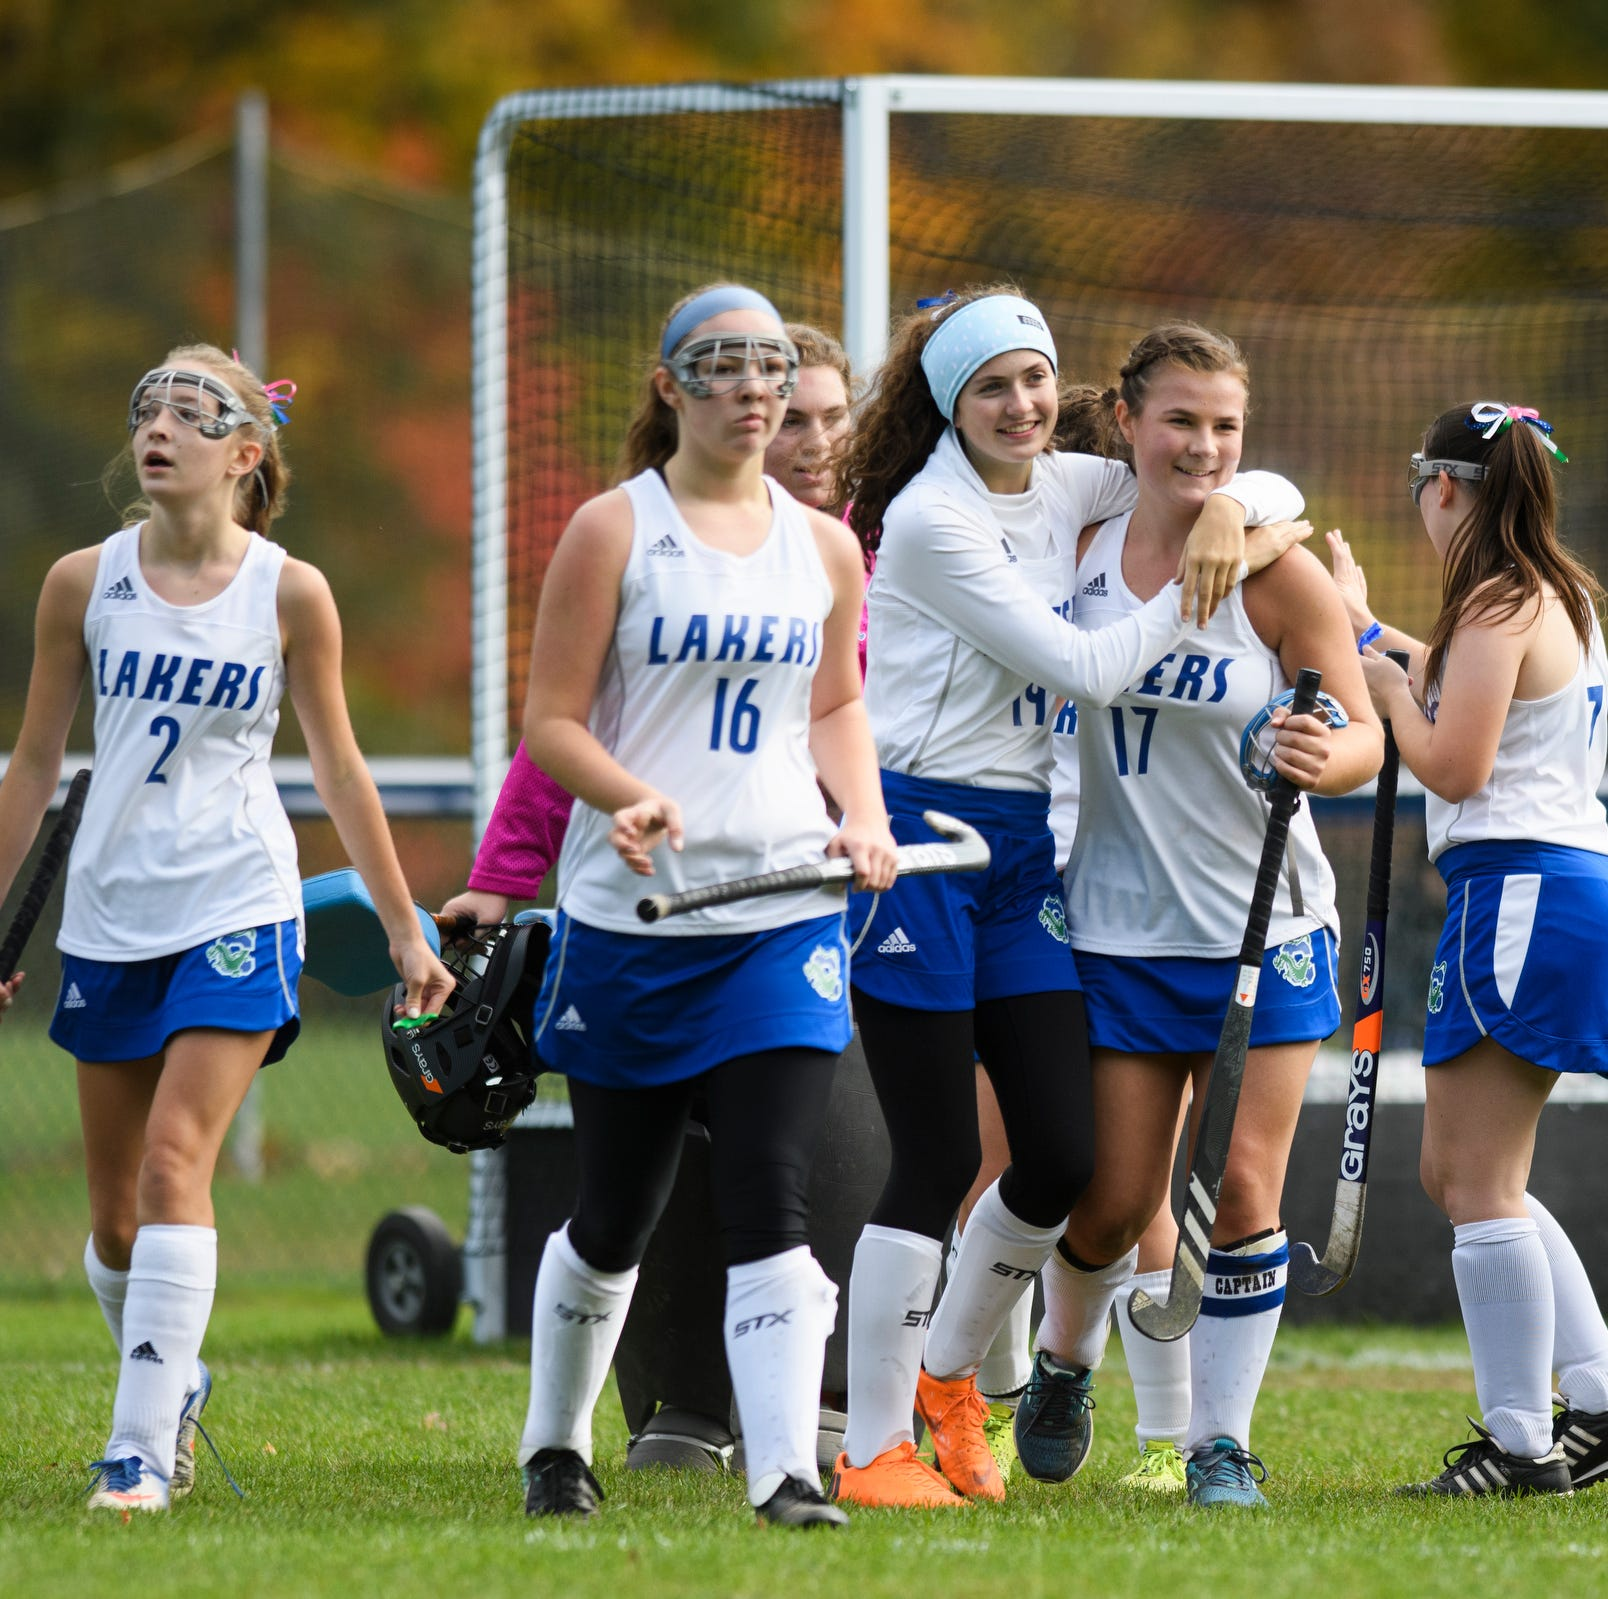 2018 Vermont high school field hockey playoff primer and predictions